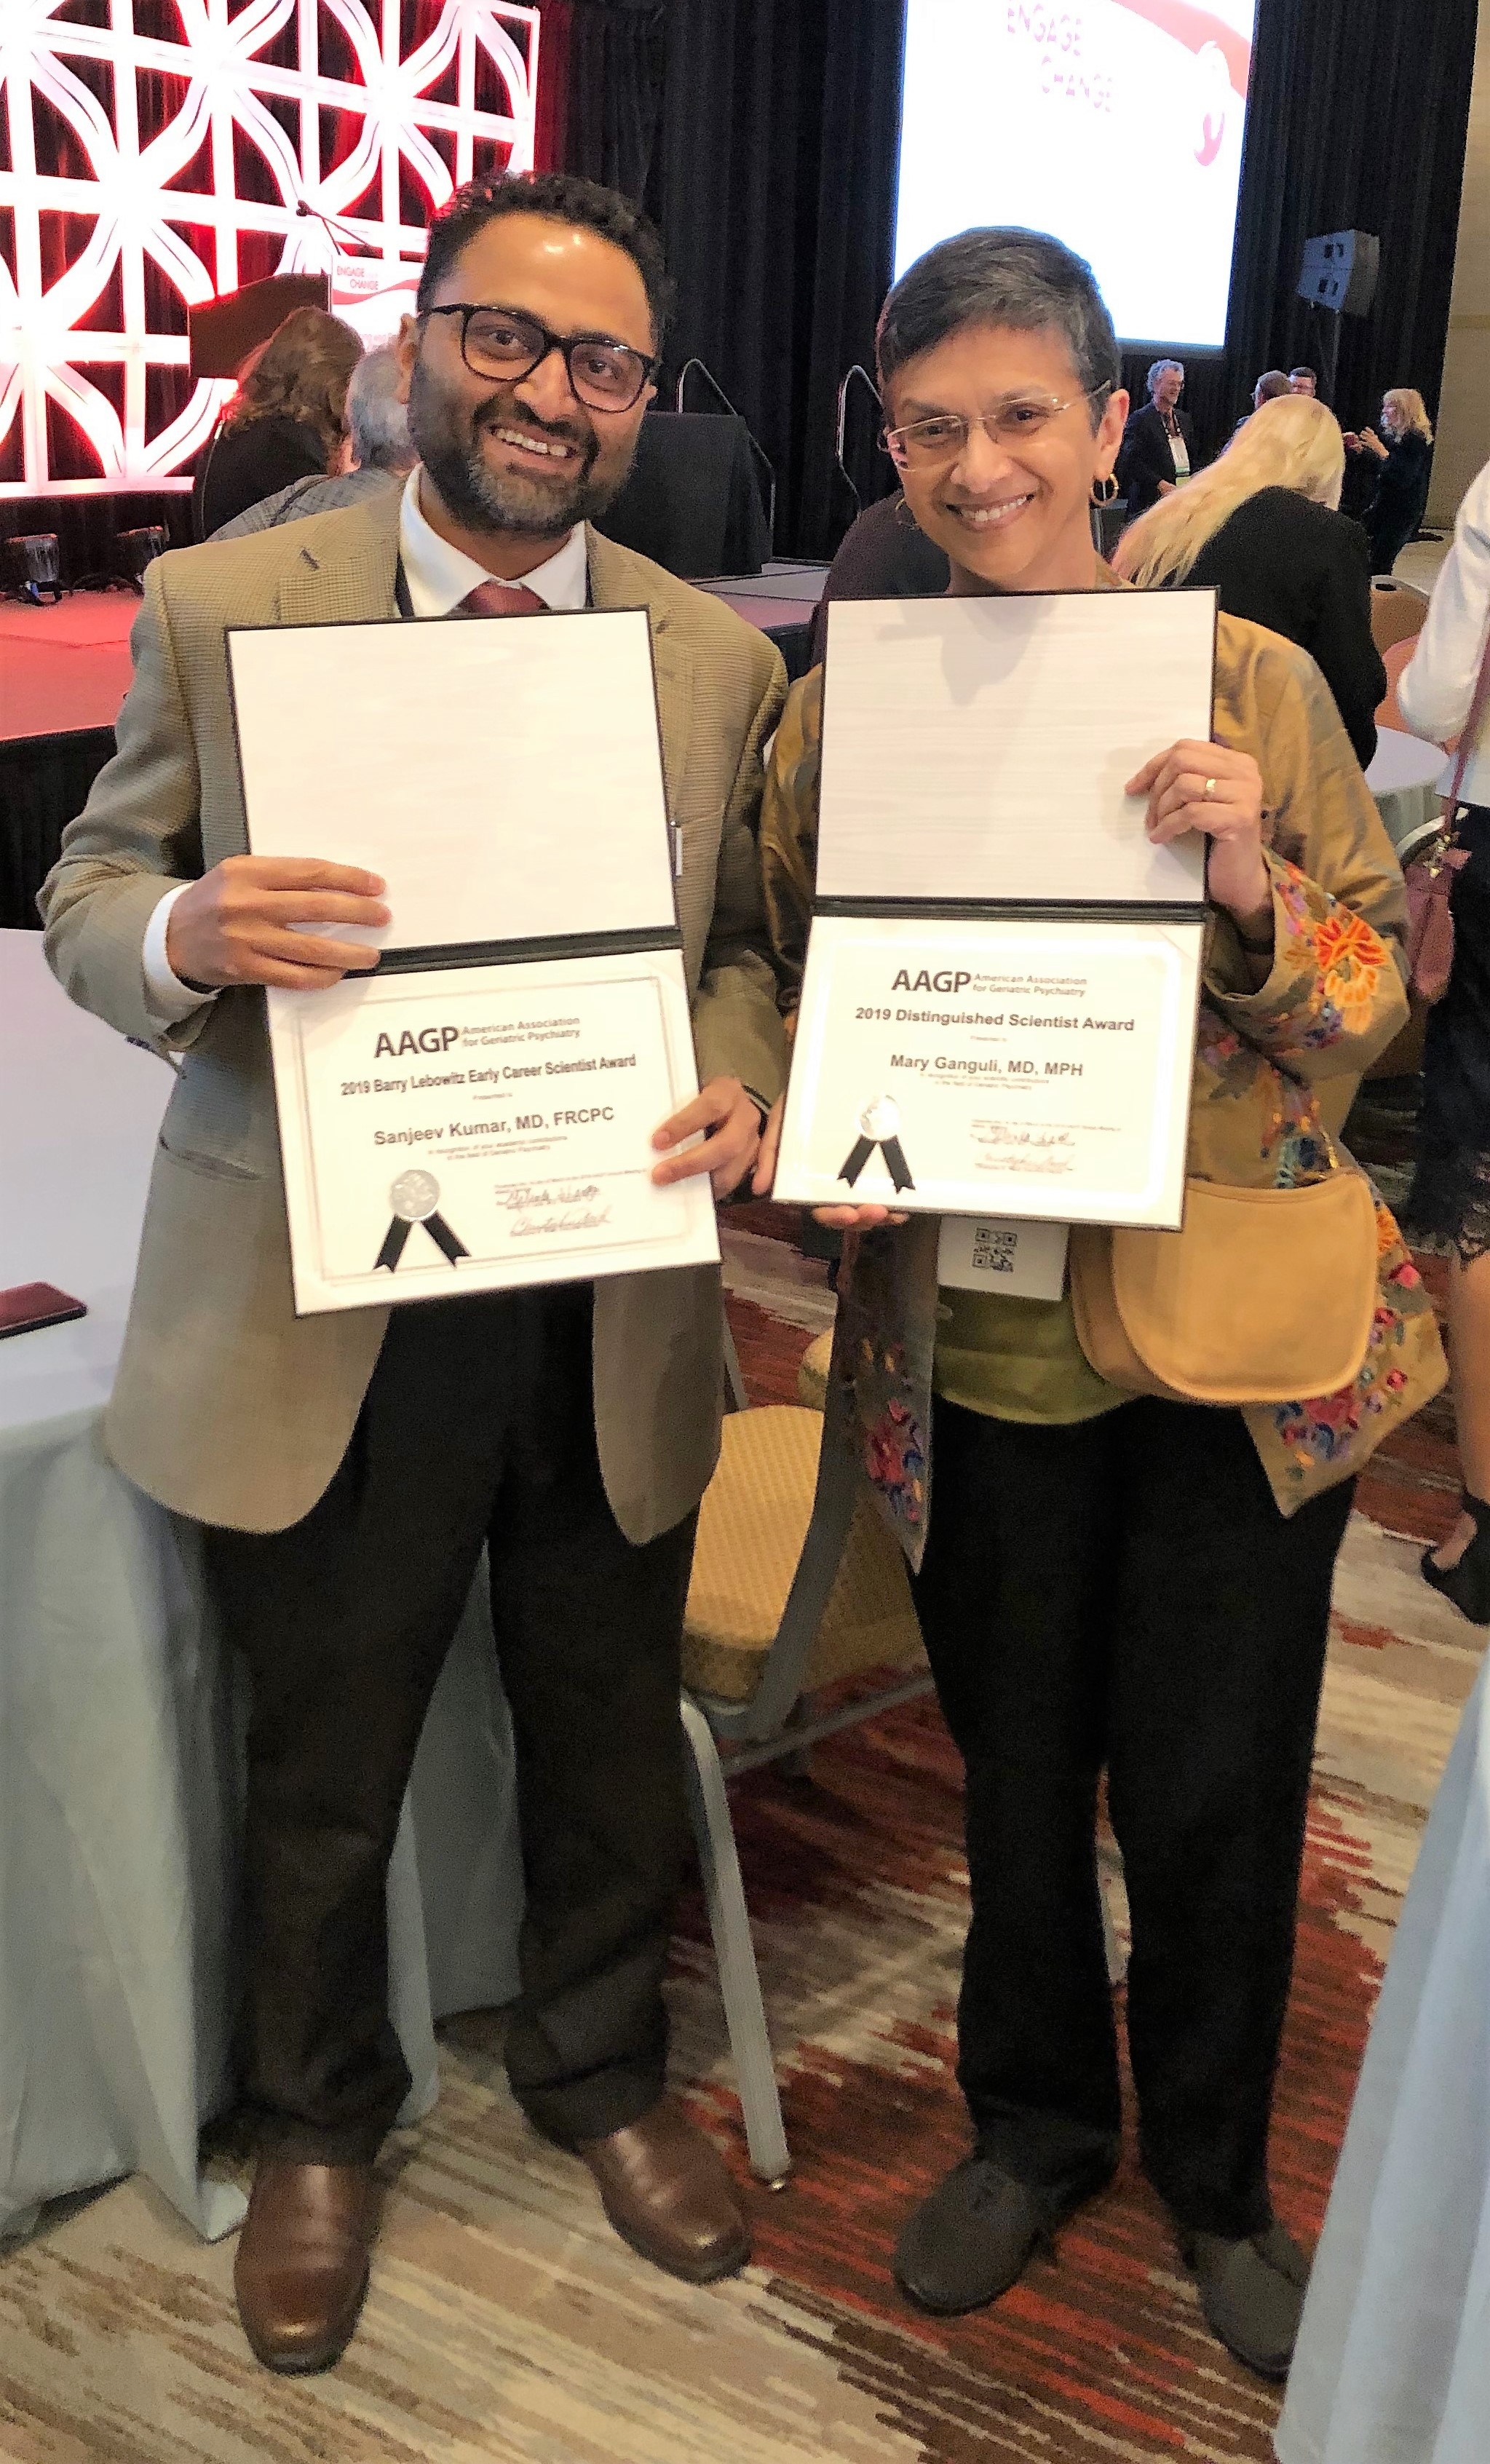 Drs. Sanjay Kumar and Mary Ganguli display their 2019 AAGP Awards